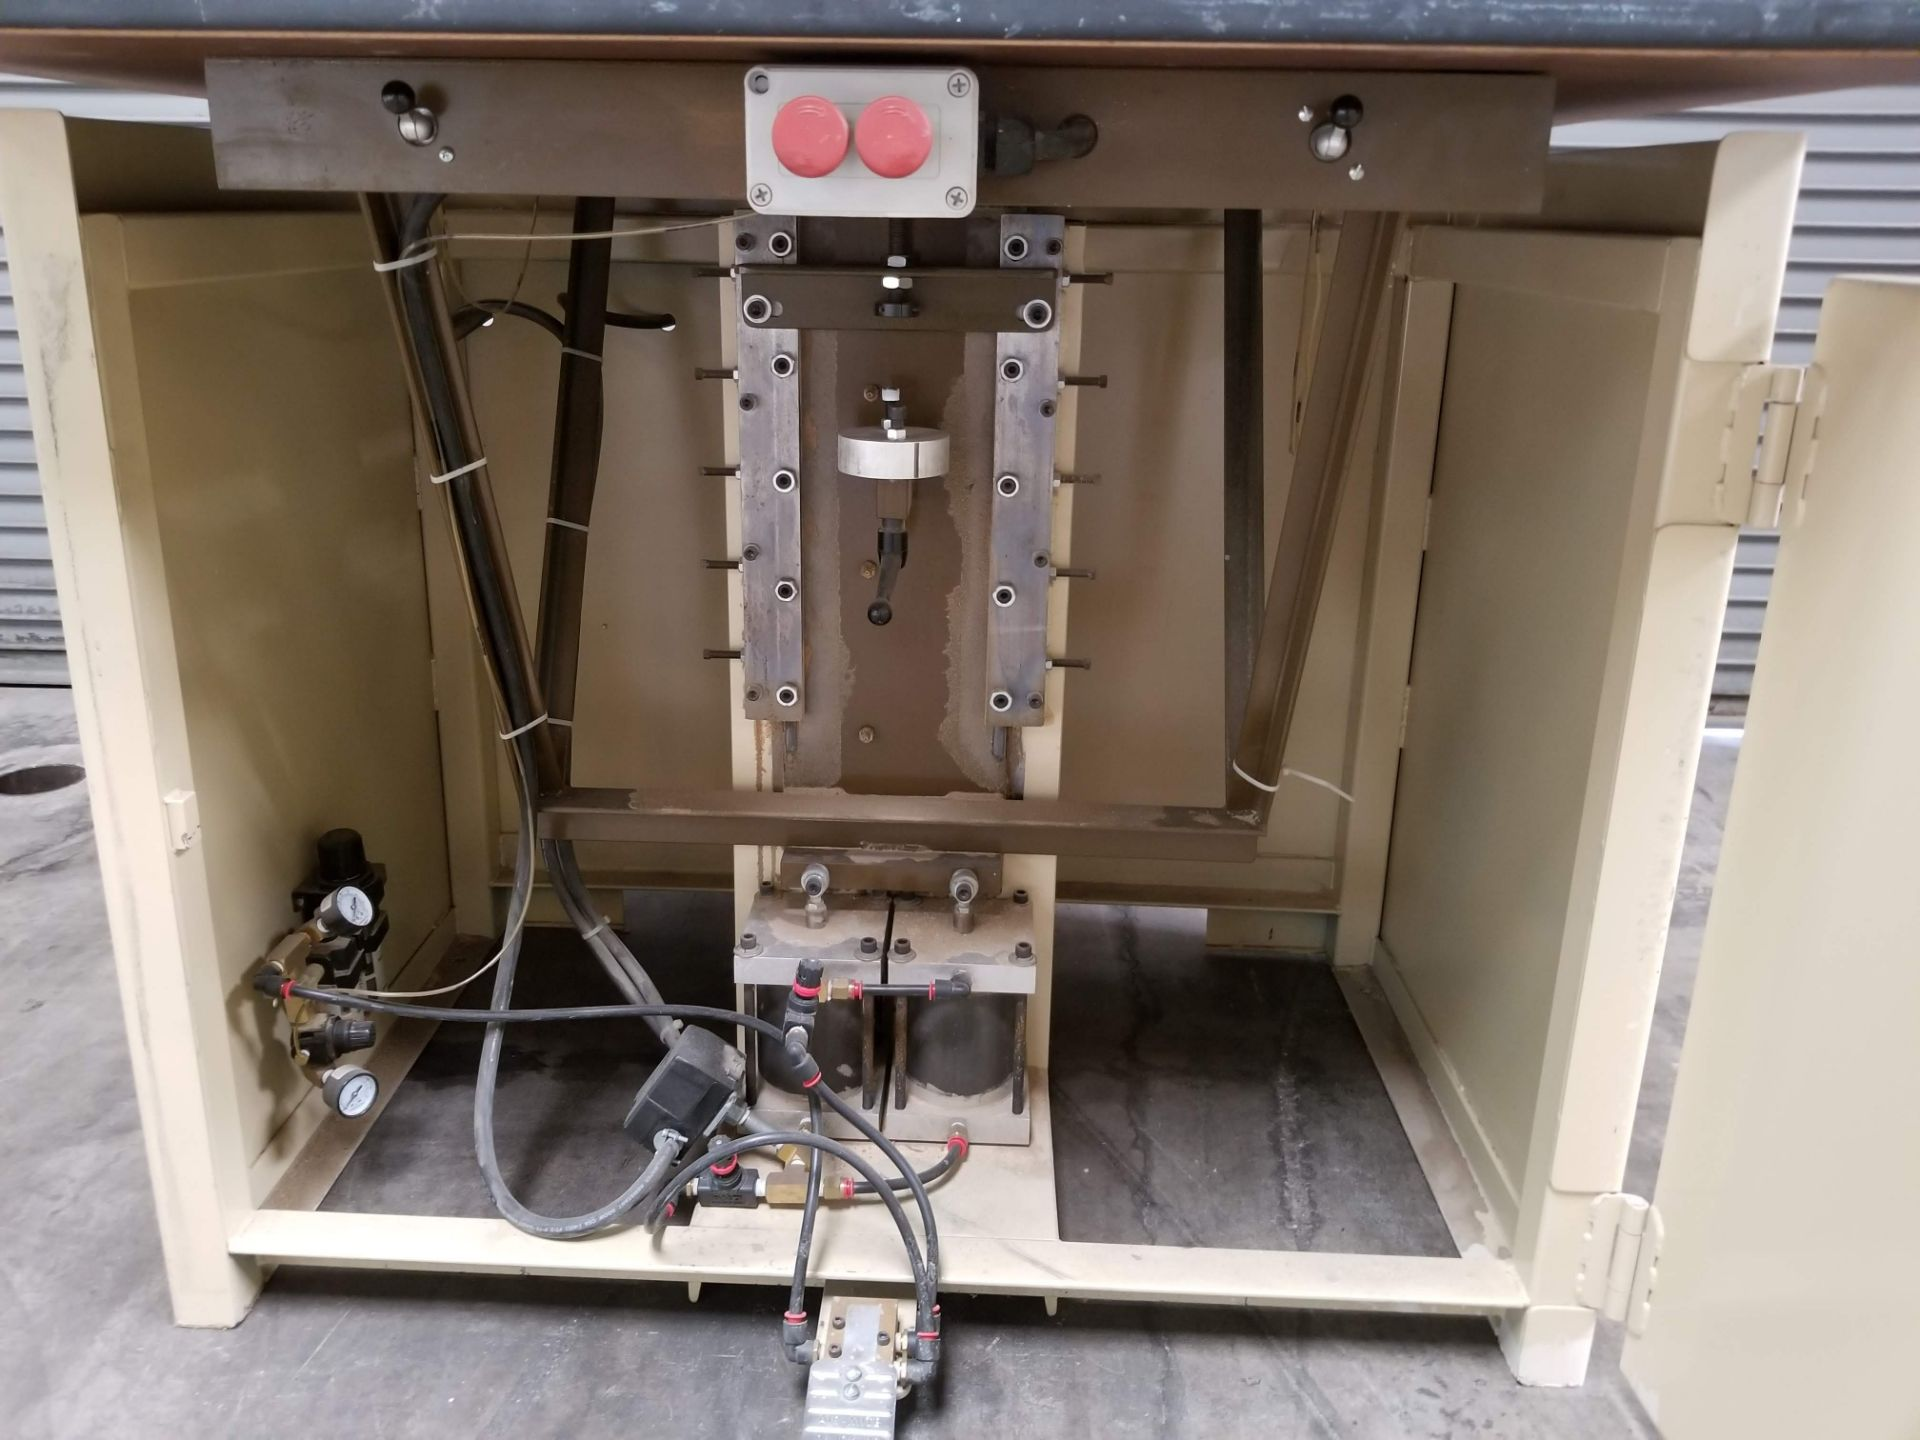 Lot 8 - Ritter #R46 46 Spindle 32mm Line Boring Machine, 2-3HP 230V 3ph motors, 23 gear driven vertical